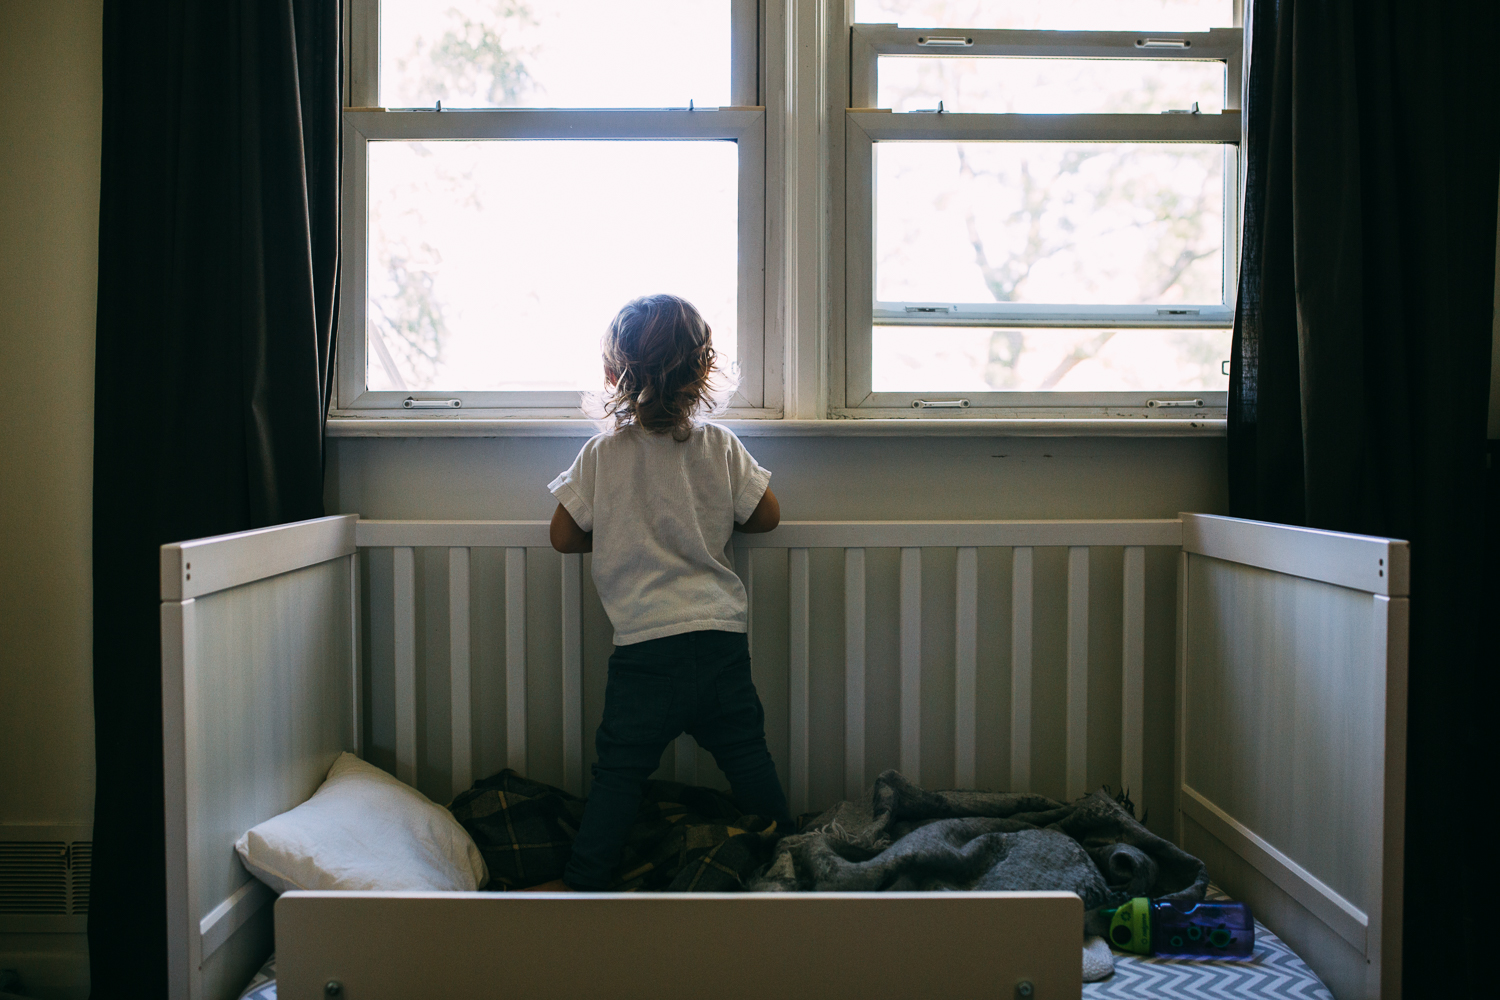 3 year old toddler boy standing in crib and looking out window - Stouffville family photography